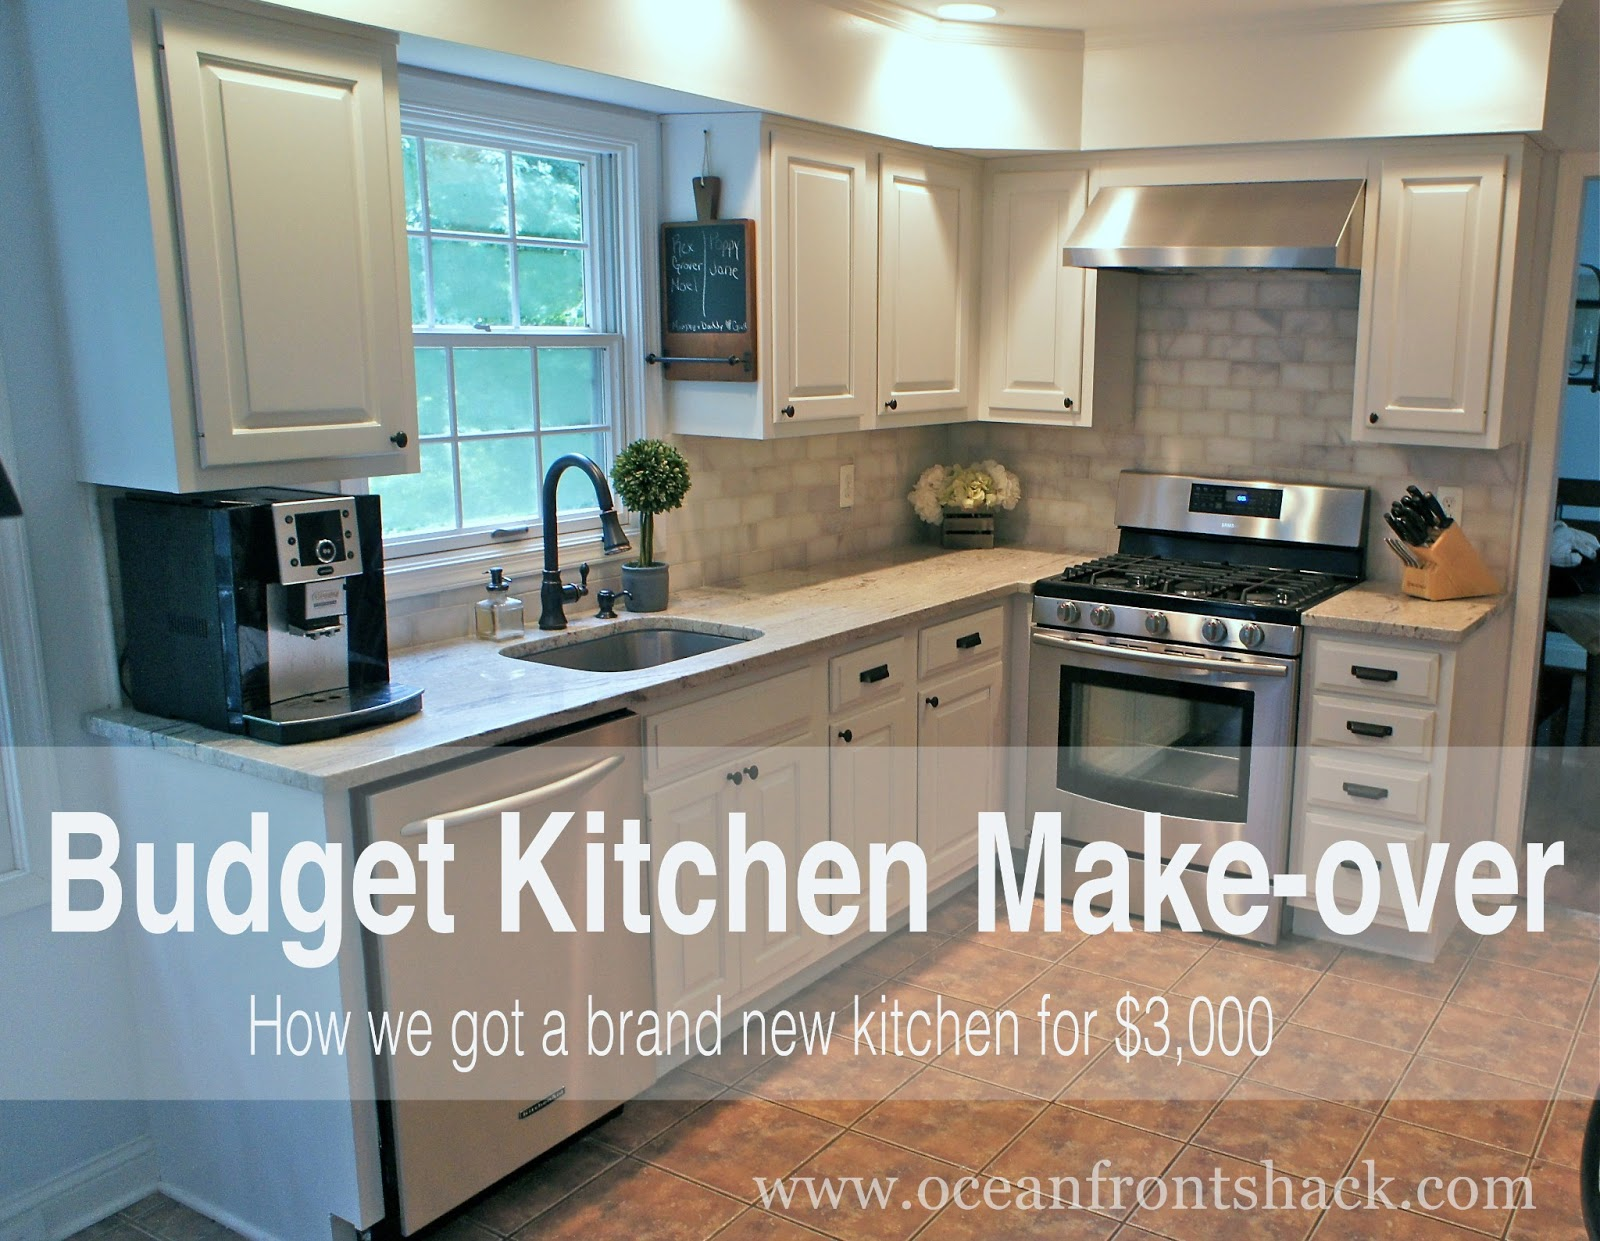 Budget Kitchen Makeover | Ocean Front Shack